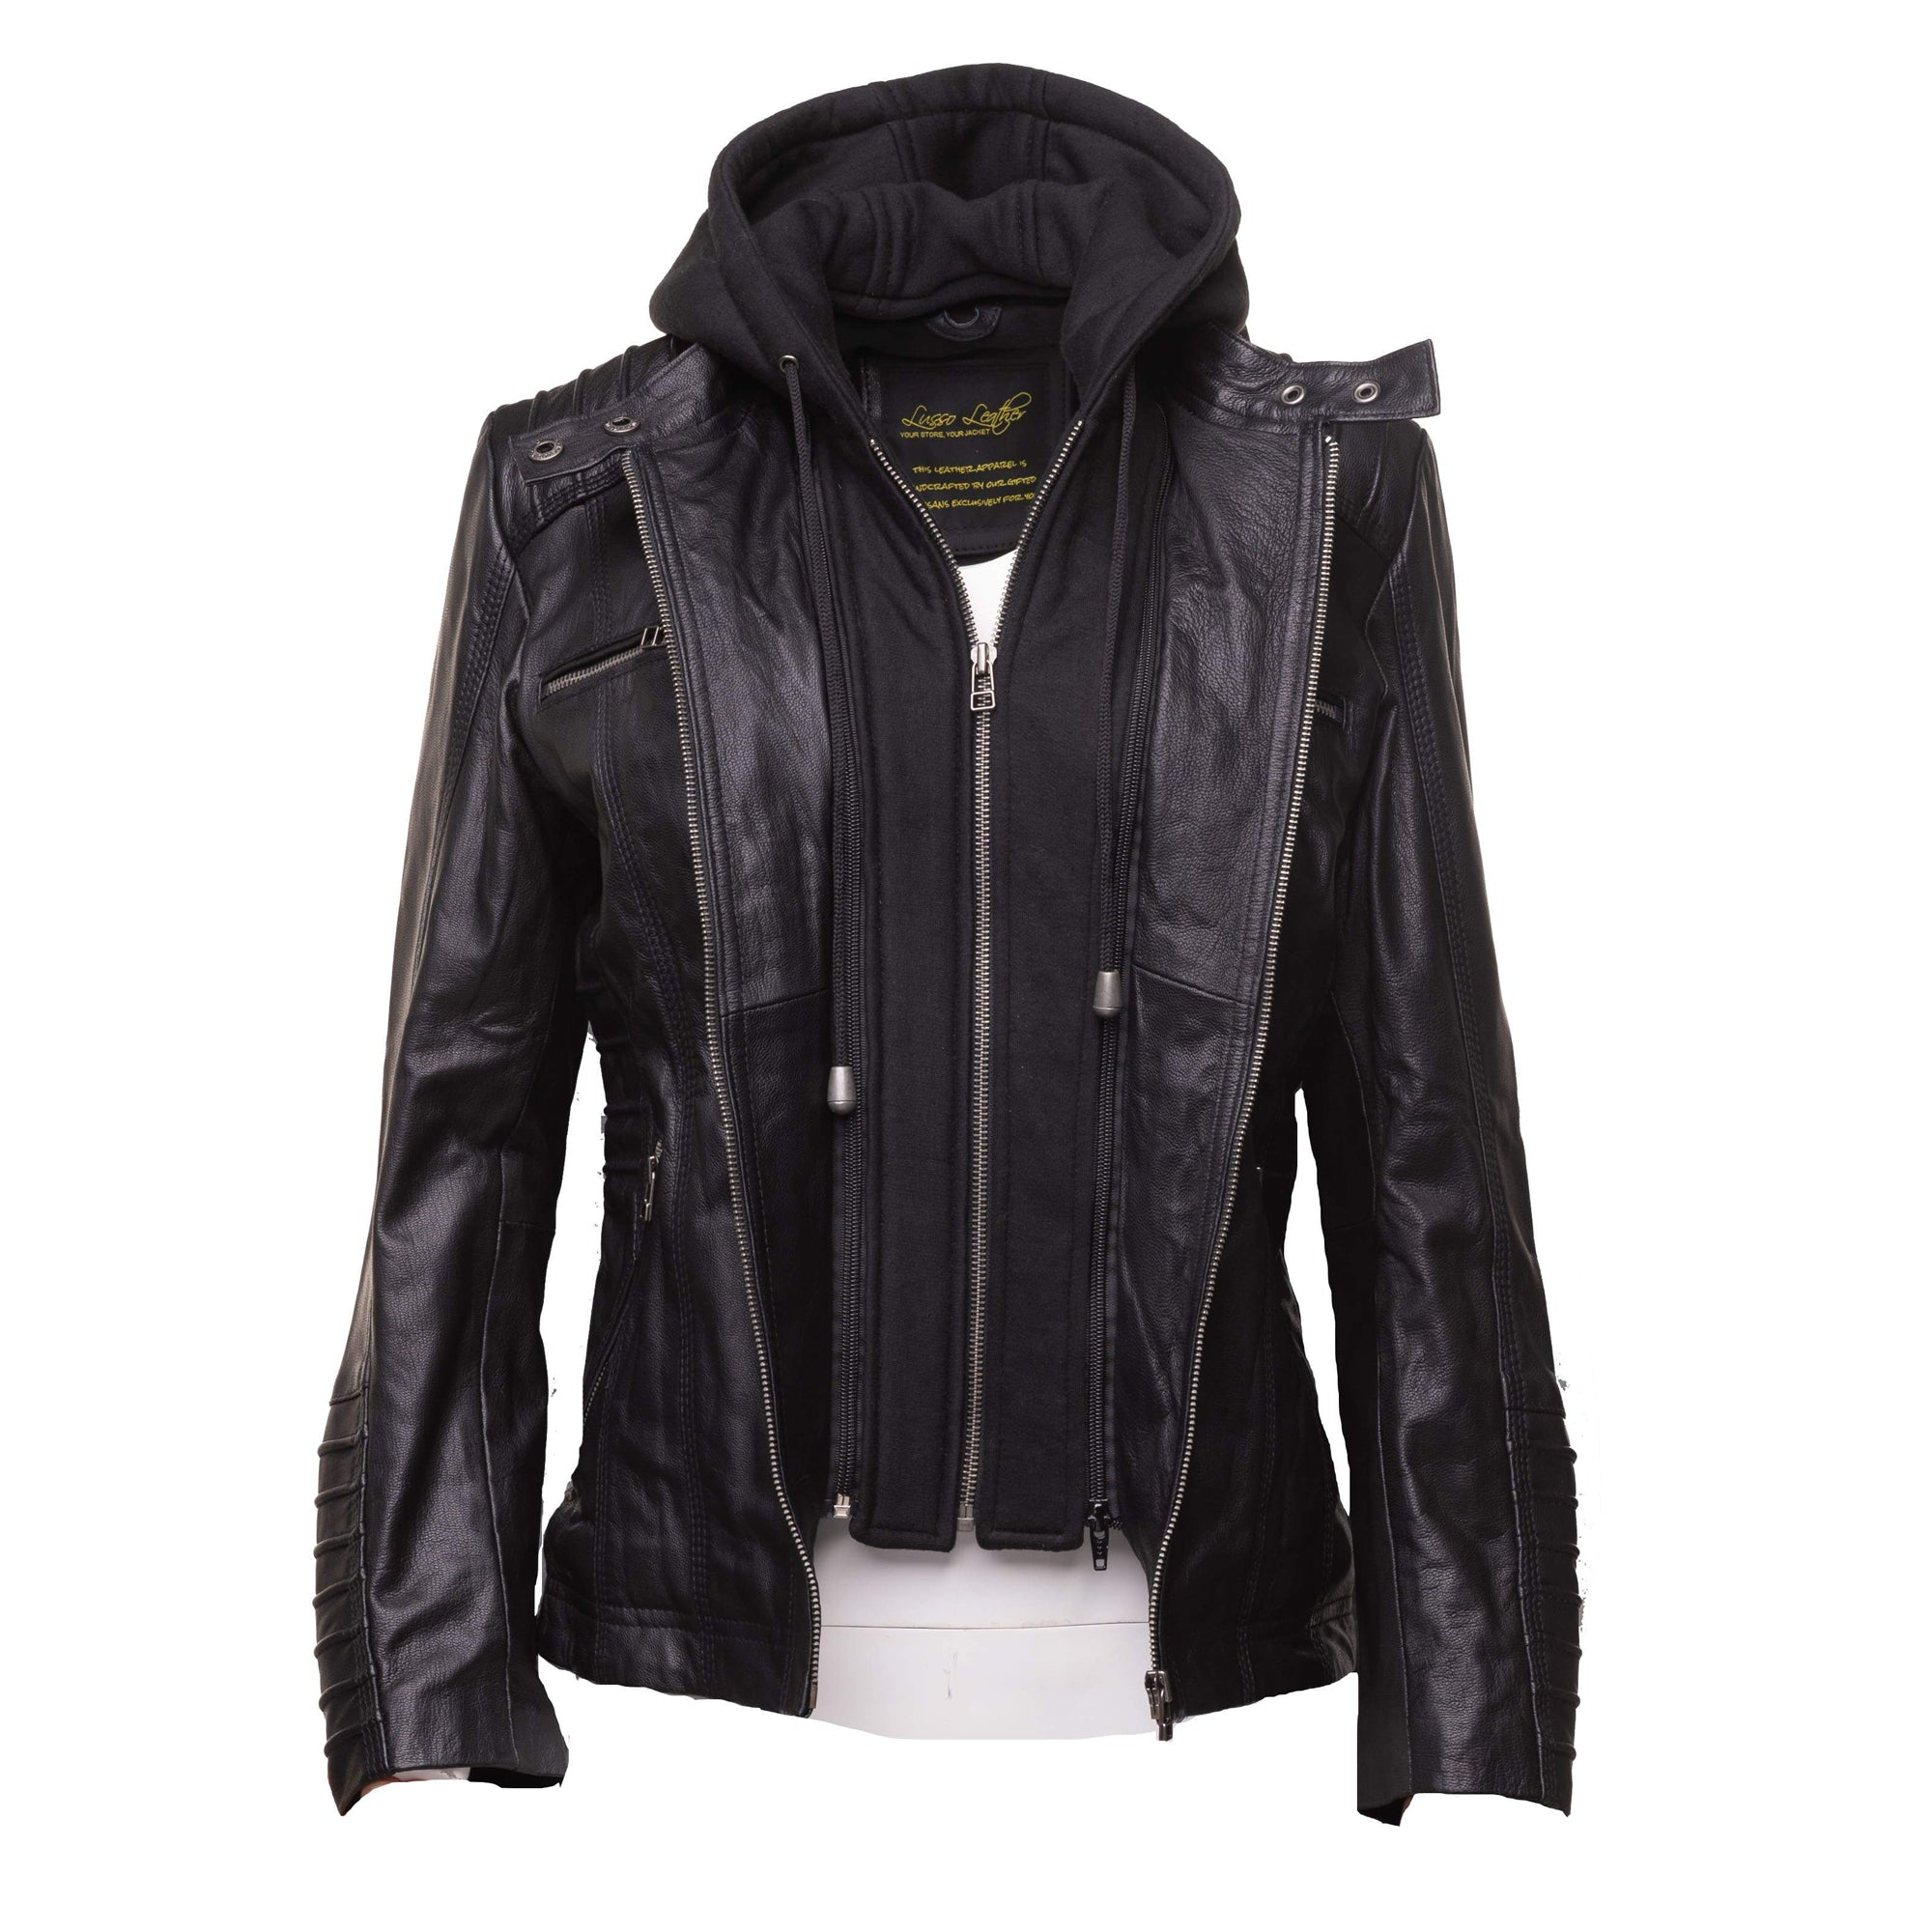 Women's black leather jacket with piping details